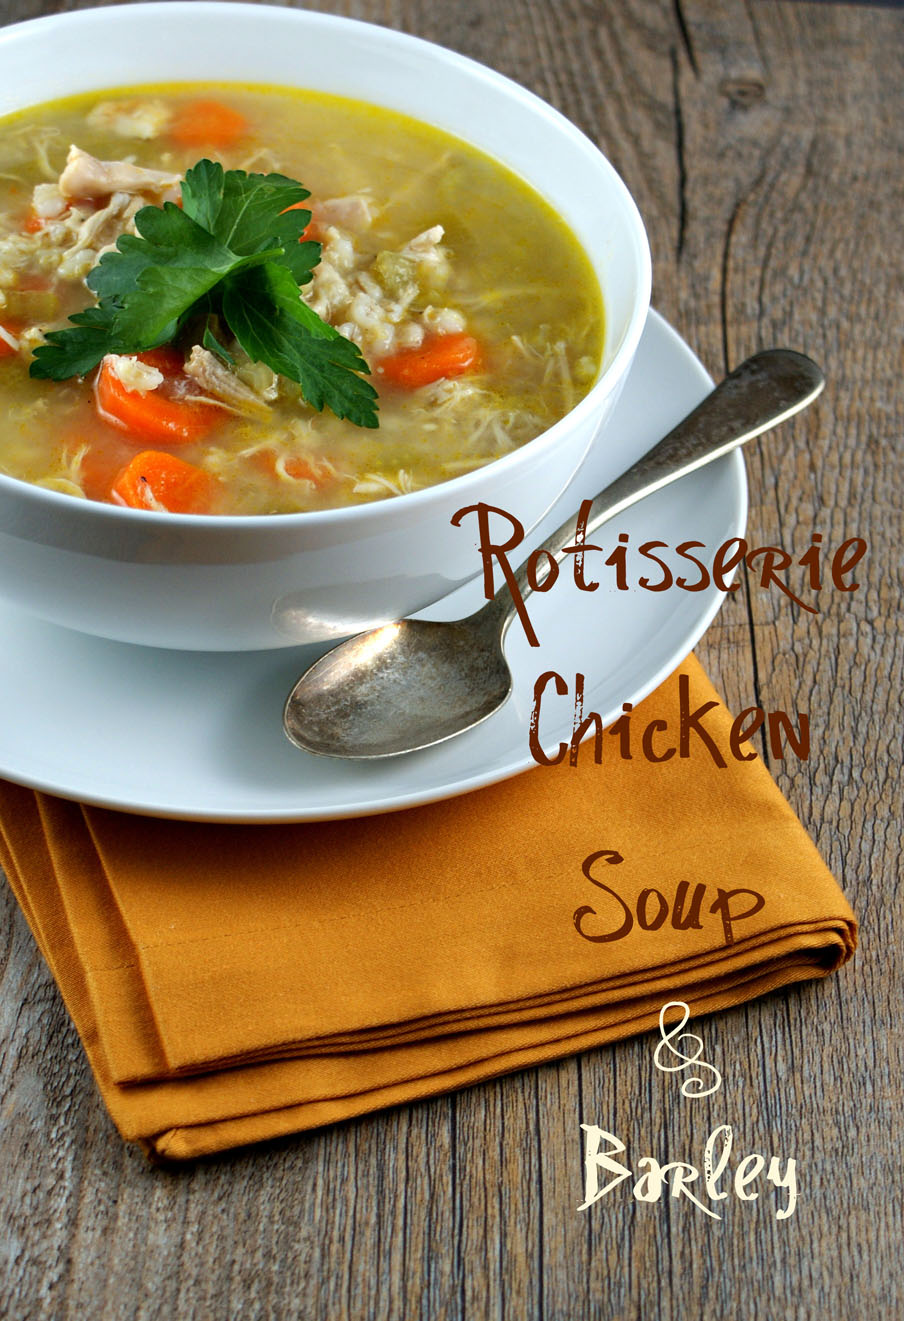 Authentic Suburban Gourmet: Rotisserie Chicken & Barley Soup